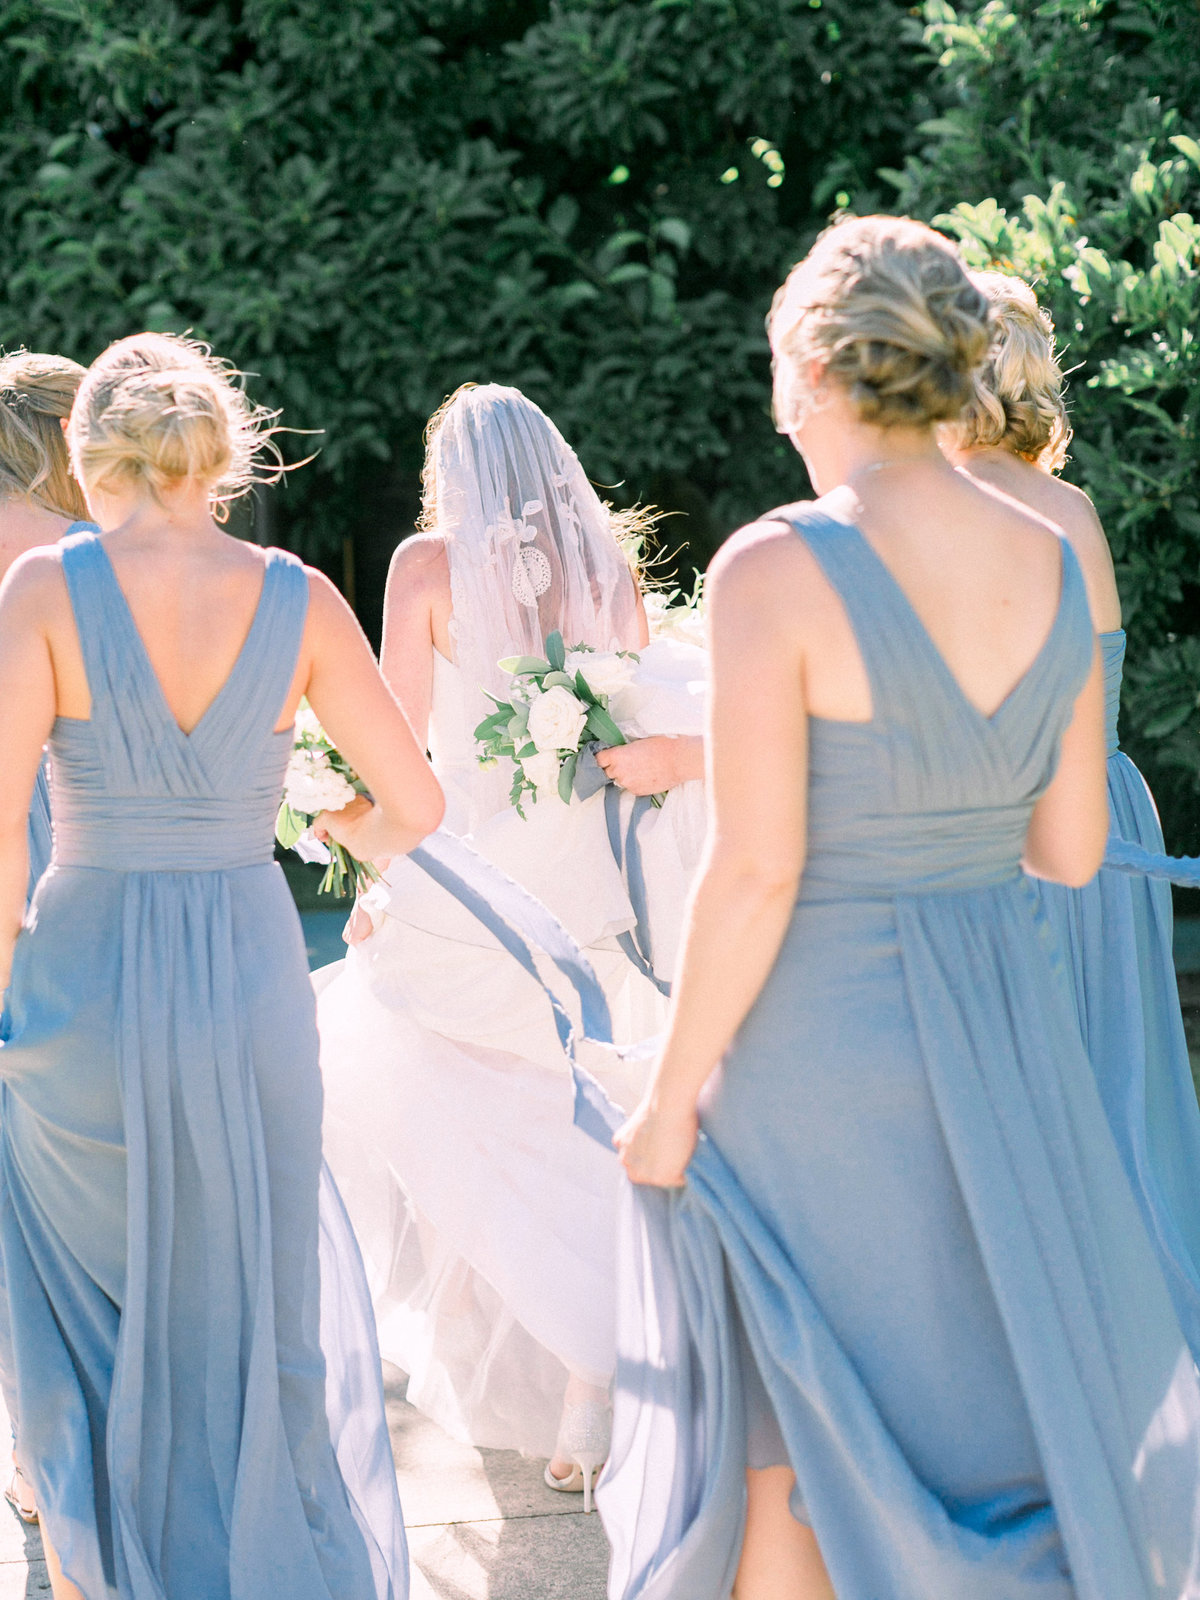 a bride walking with her bridesmaids